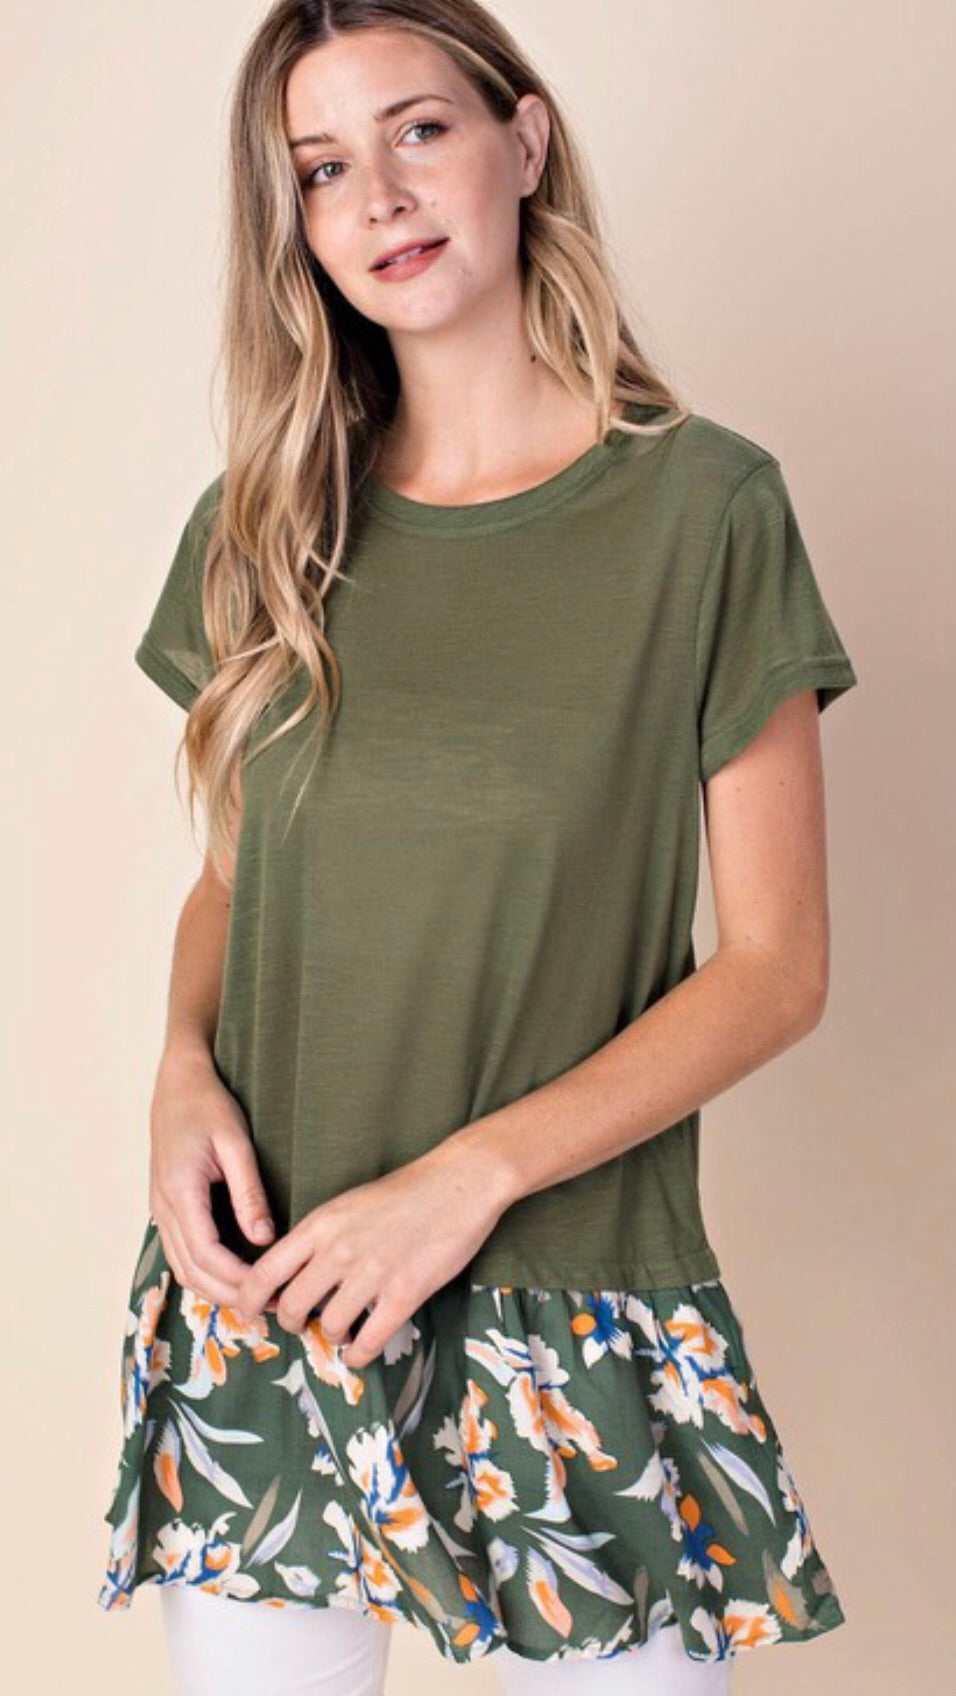 Green Floral Flowy Top